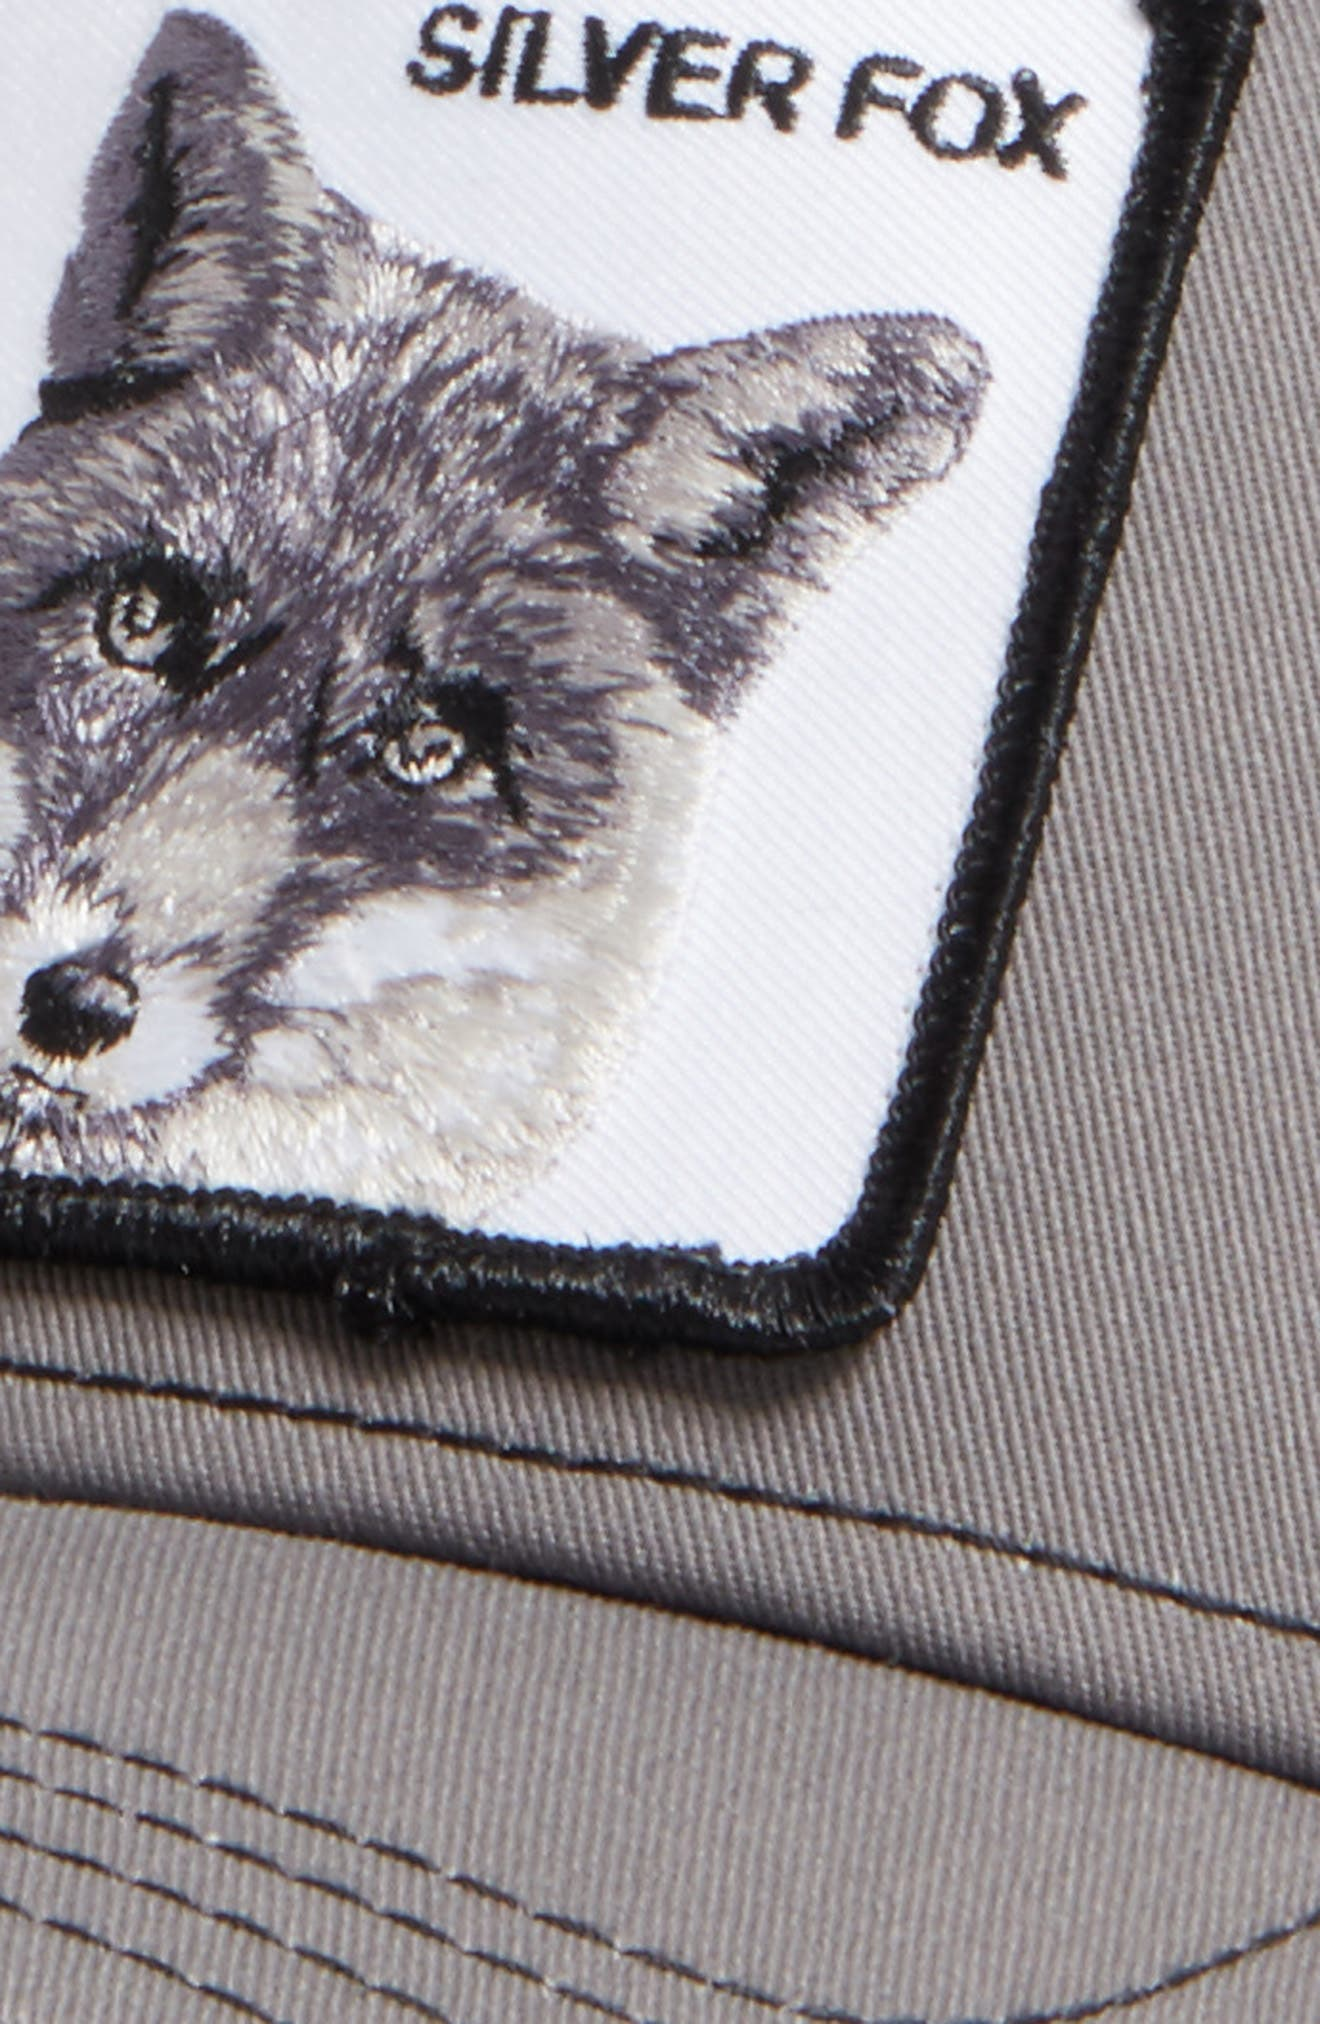 'Silver Fox' Trucker Hat,                             Alternate thumbnail 3, color,                             CHARCOAL